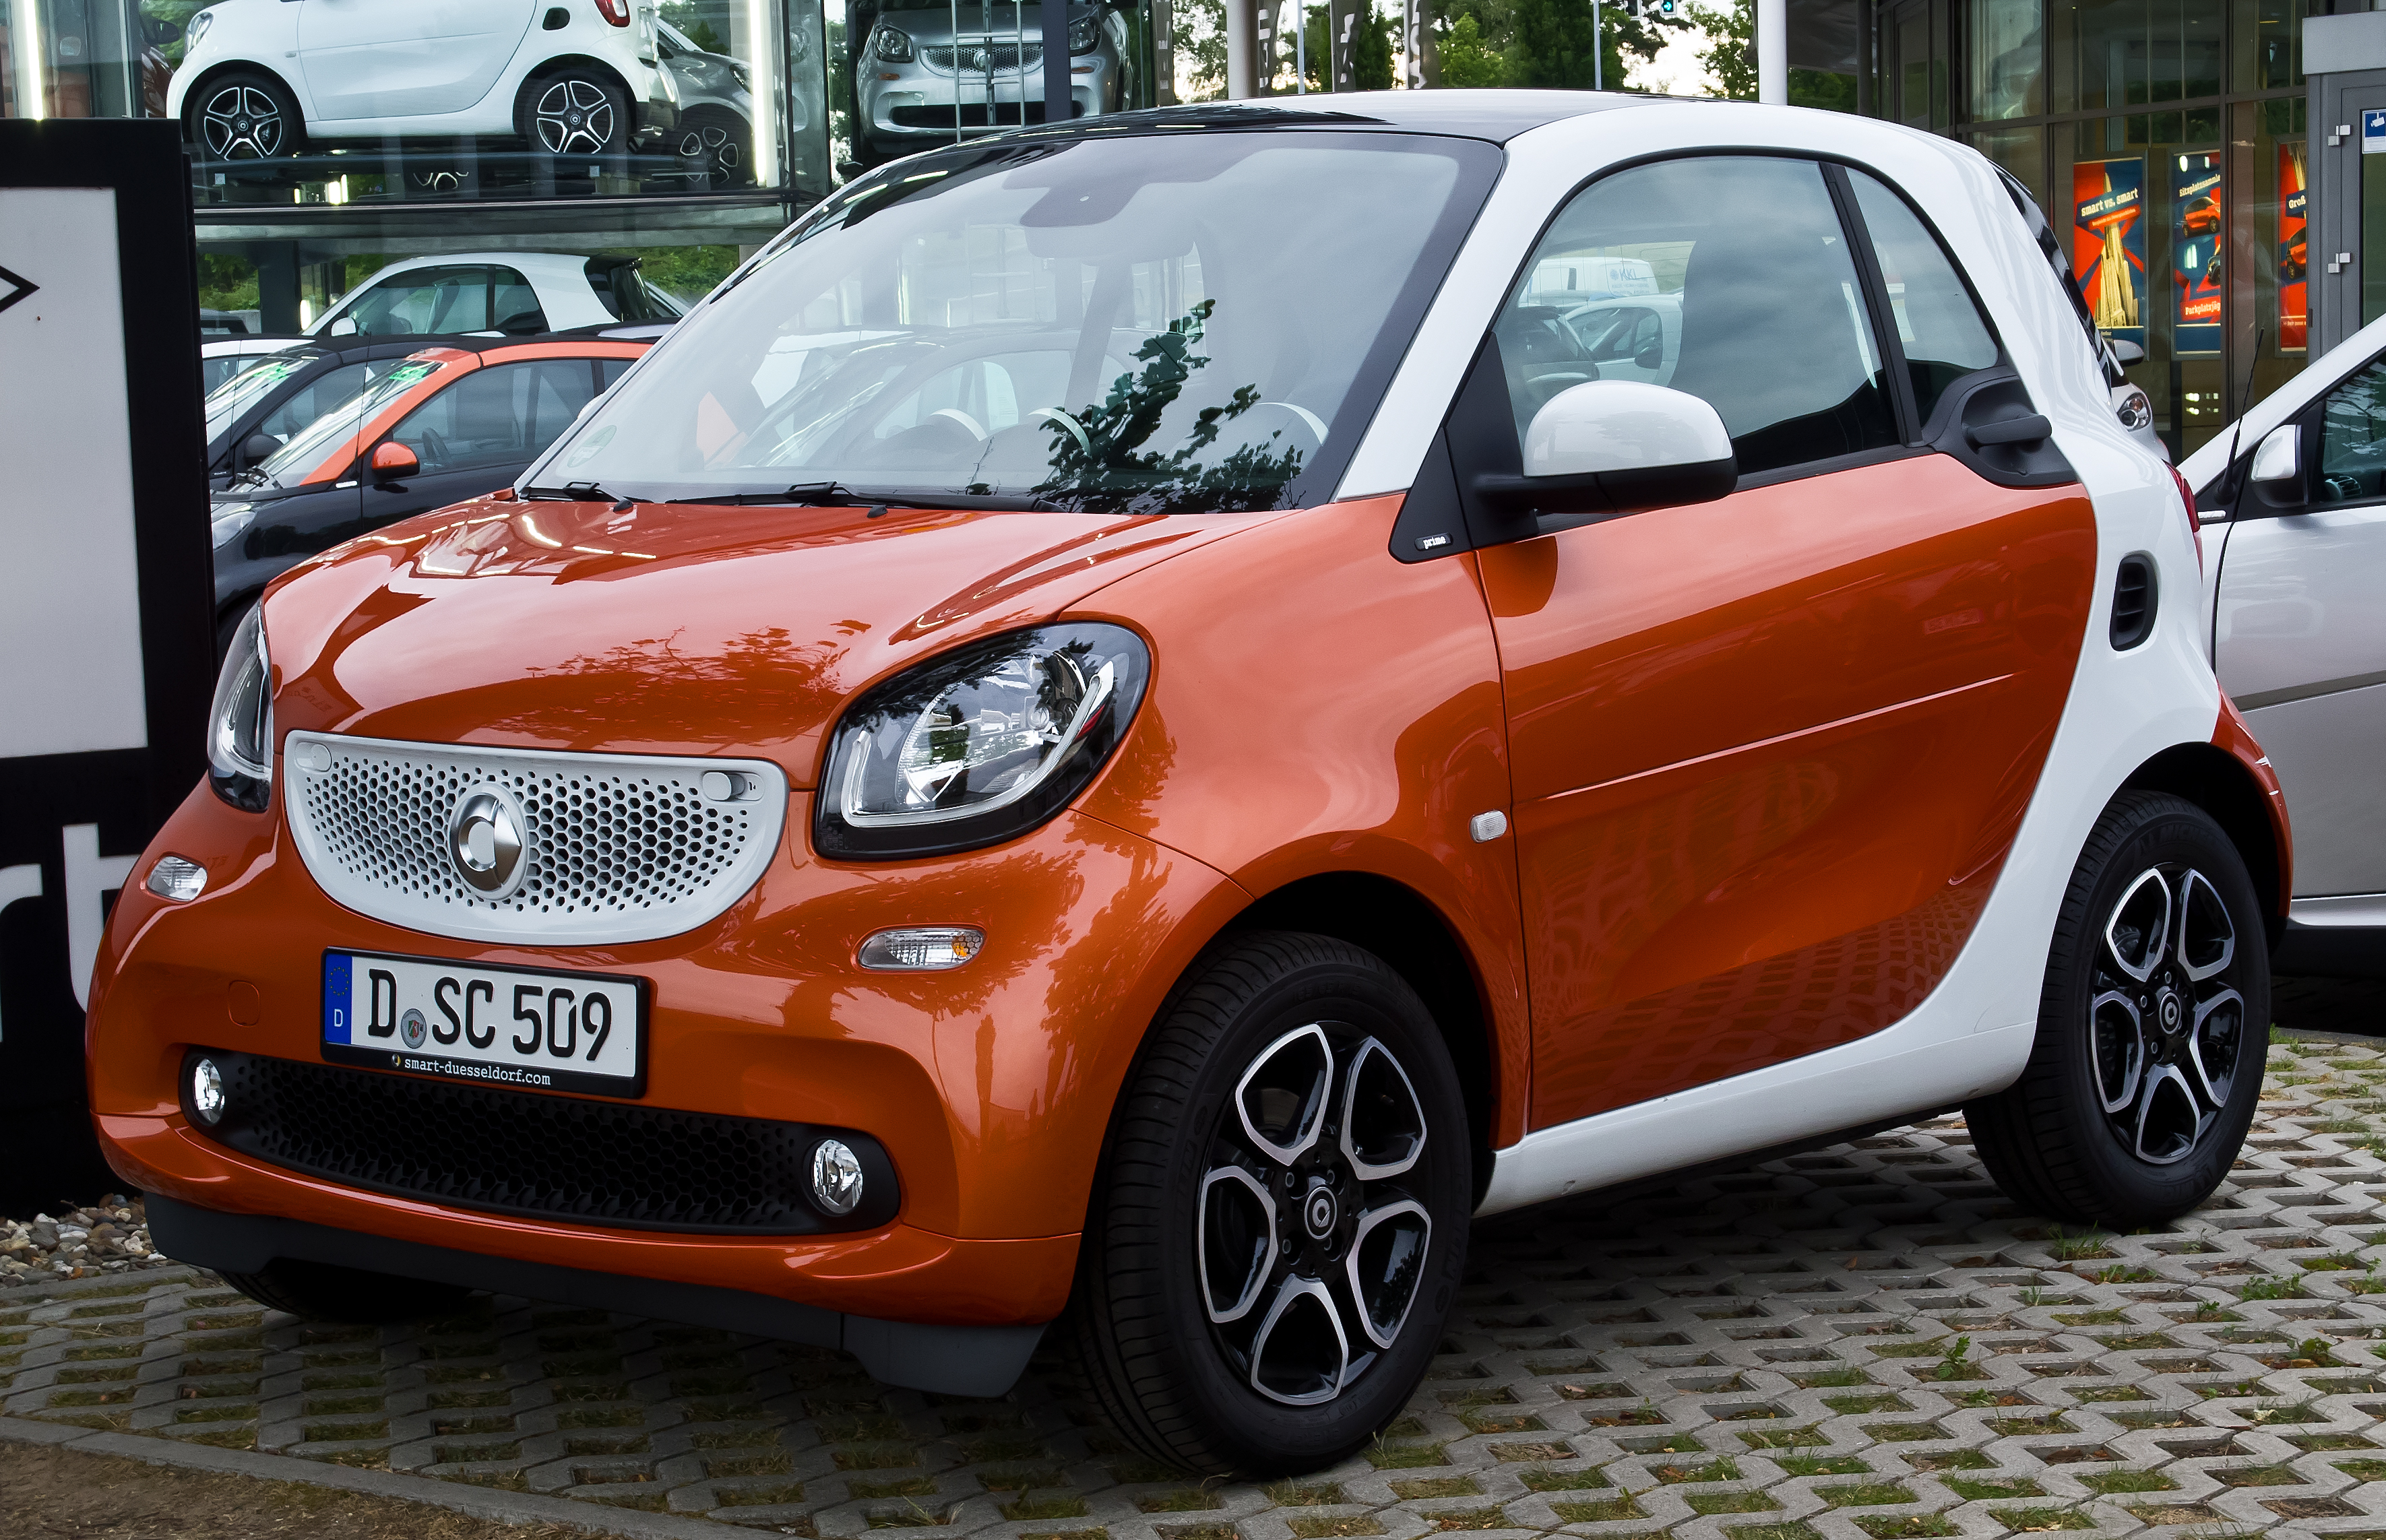 Smart Fortwo-Gold luxury car